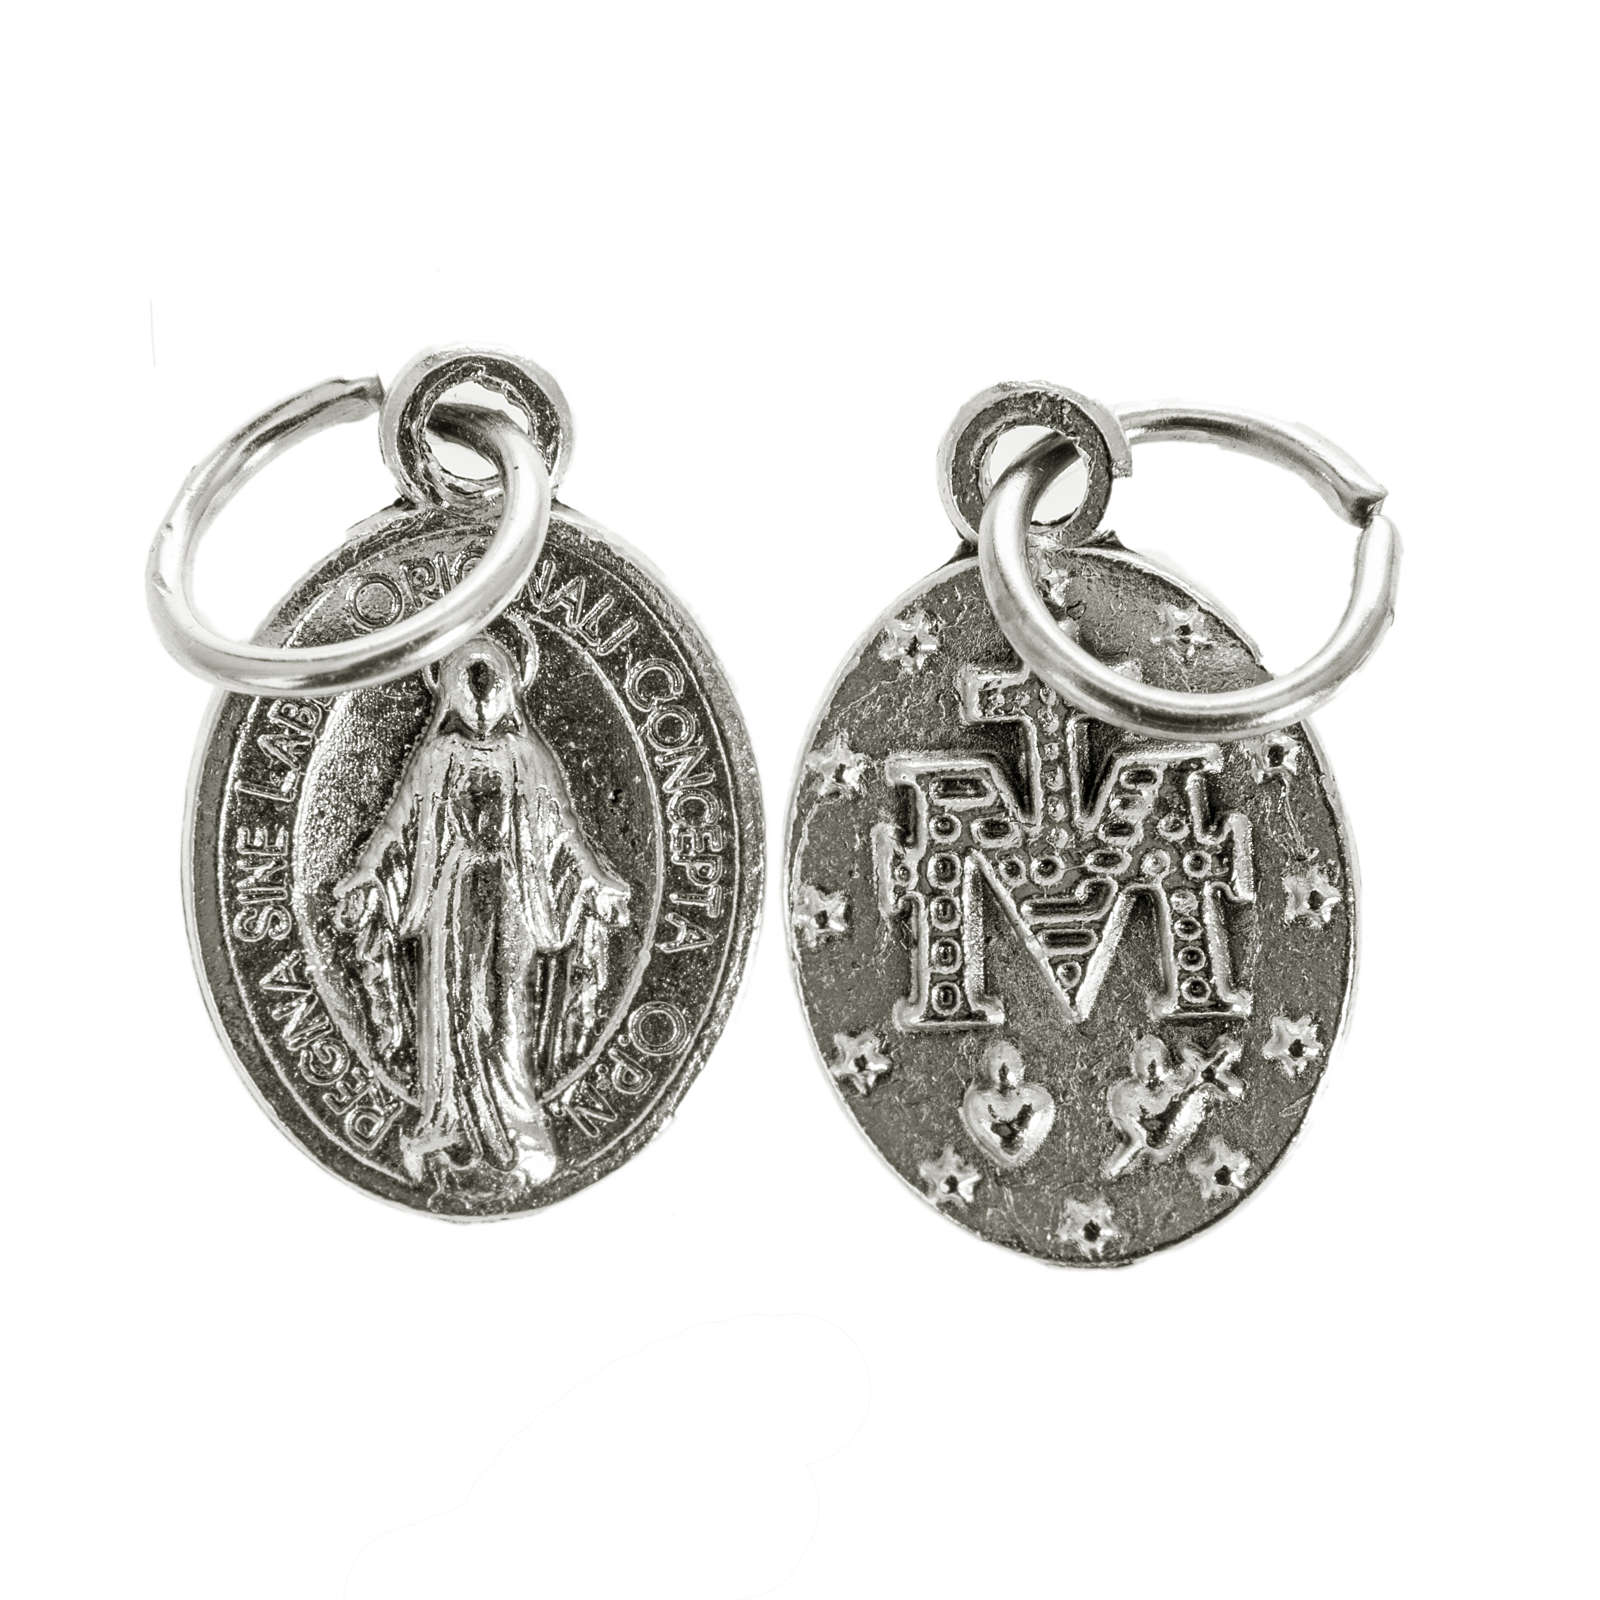 Miraculous Medal, oval shaped in silver metal 12mm 4